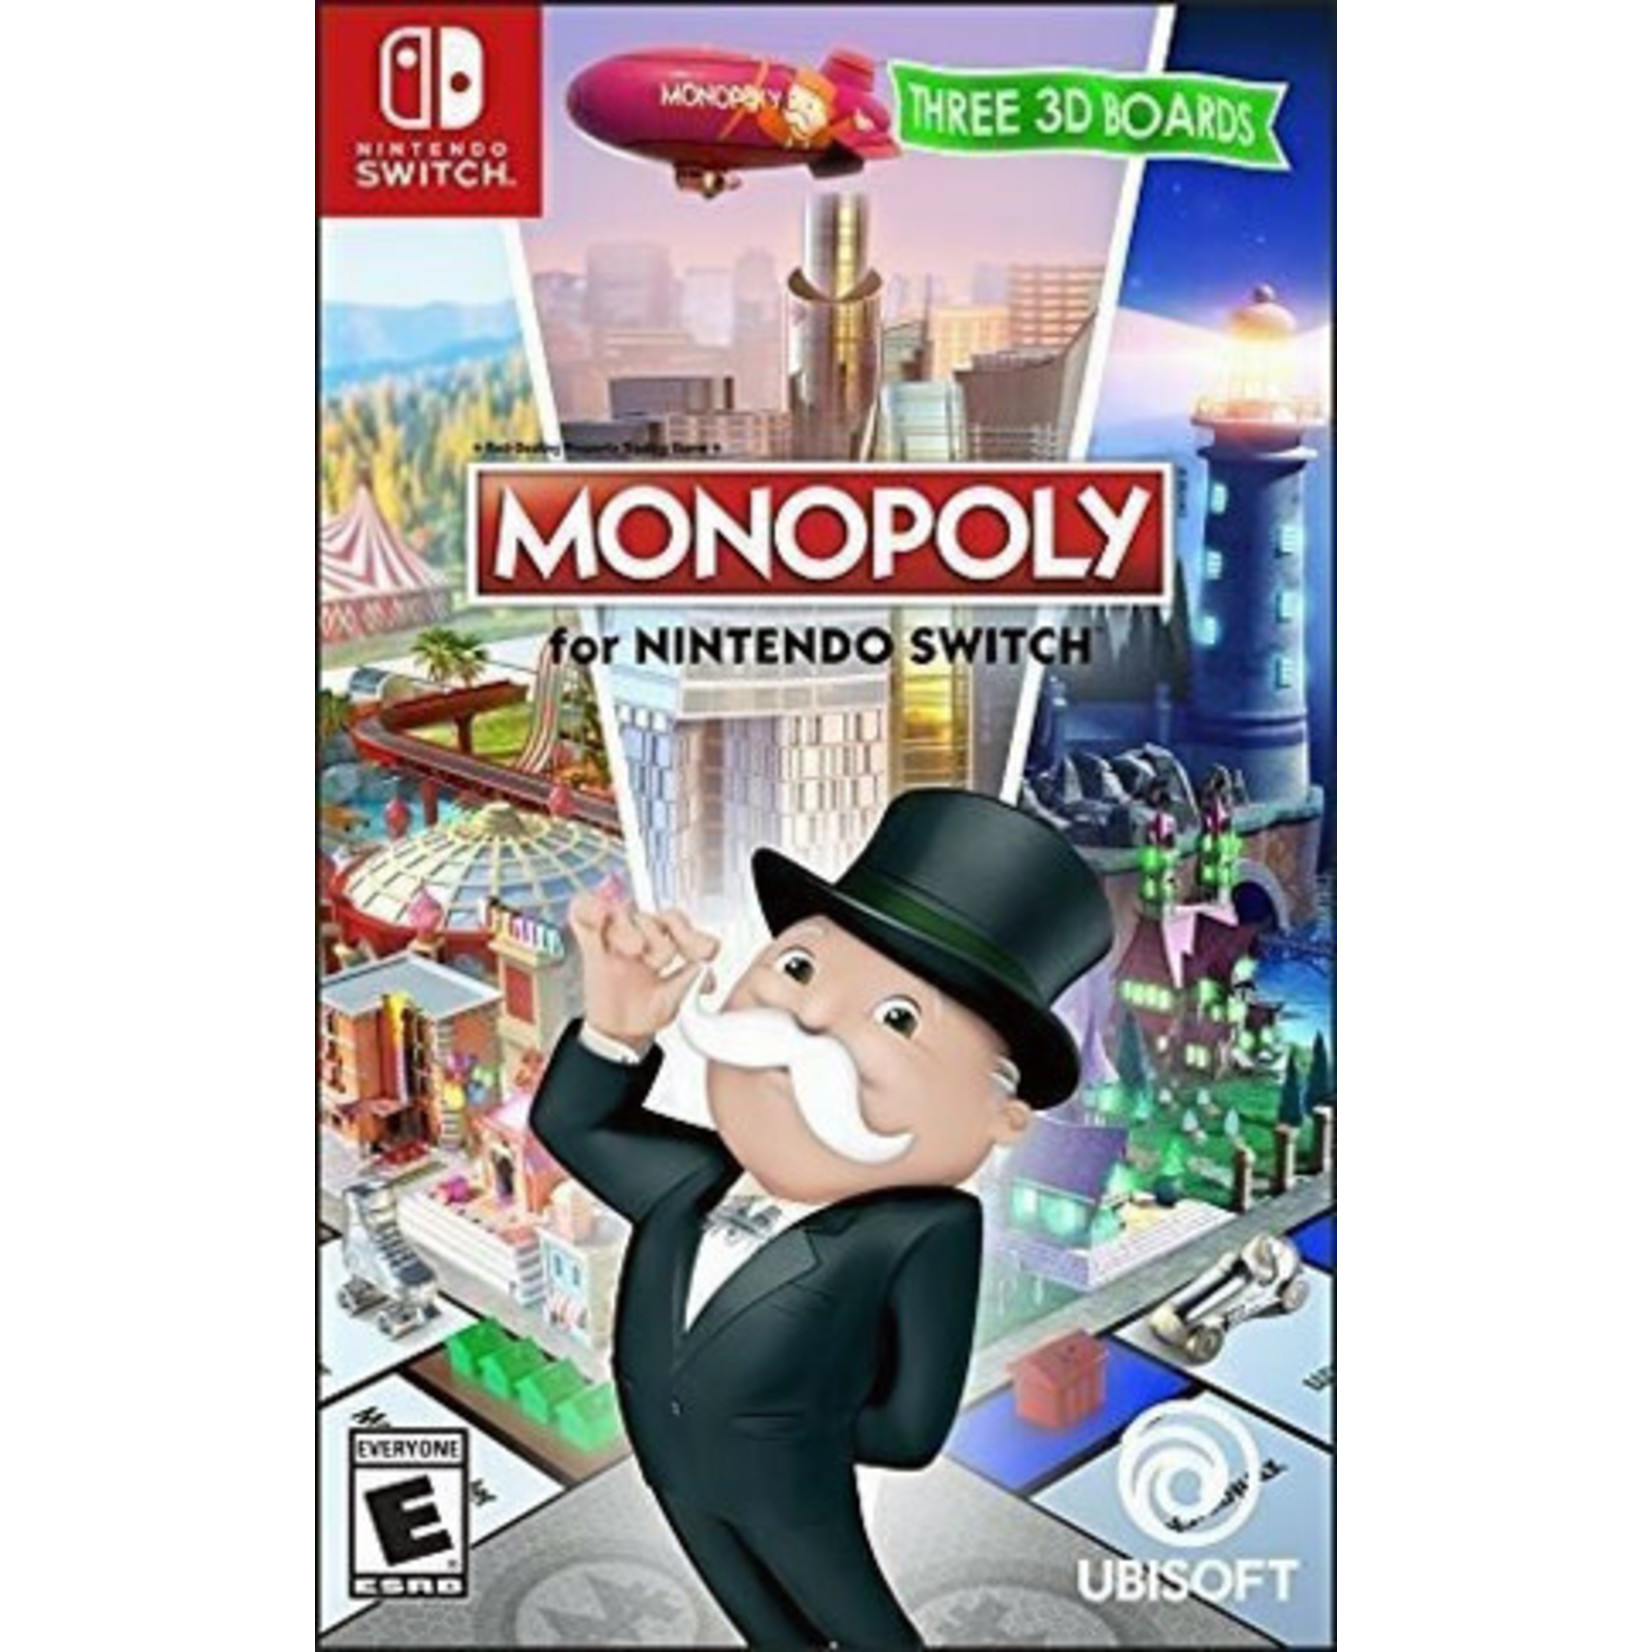 SWITCH-Monopoly for Nintendo Switch